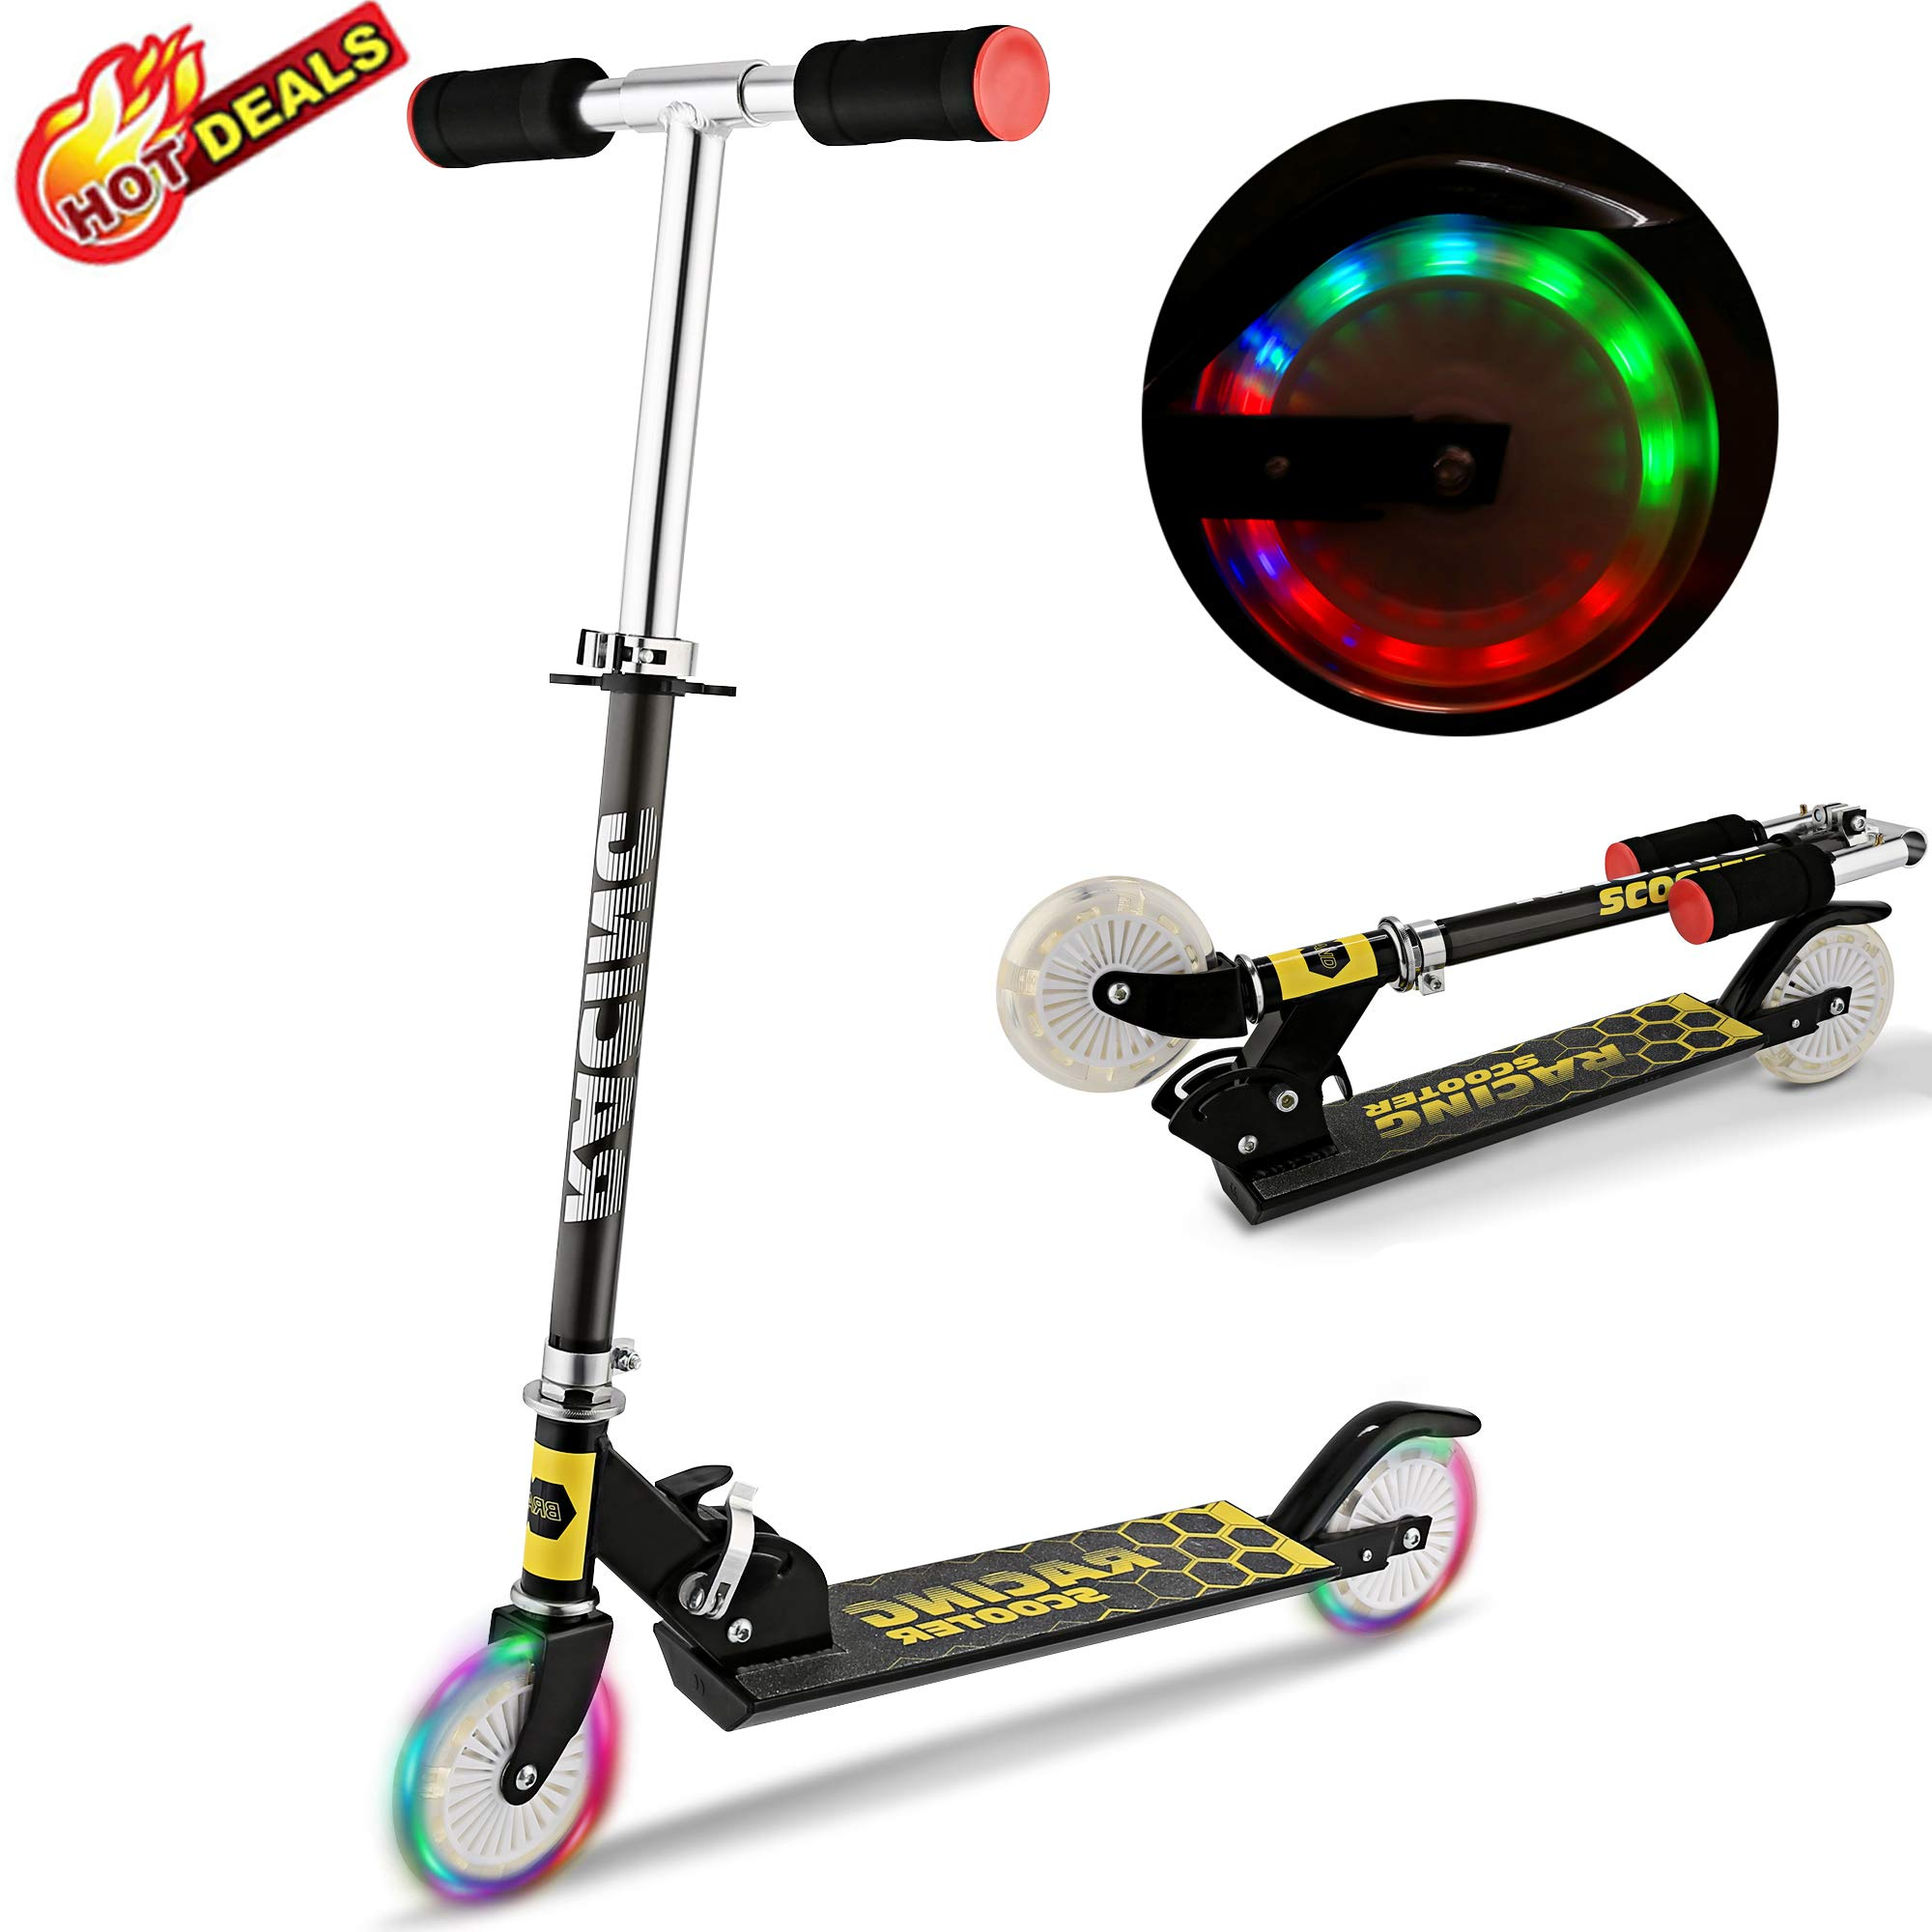 Scooter for Kids, Folding Scooters with LED Light Up 2 Wheels, Adjustable Height, Rear Fender, Kick Scooters for Girls Boys Toddler Ages 3-12 Years, Bearing Capacity 110lb by Aceshin